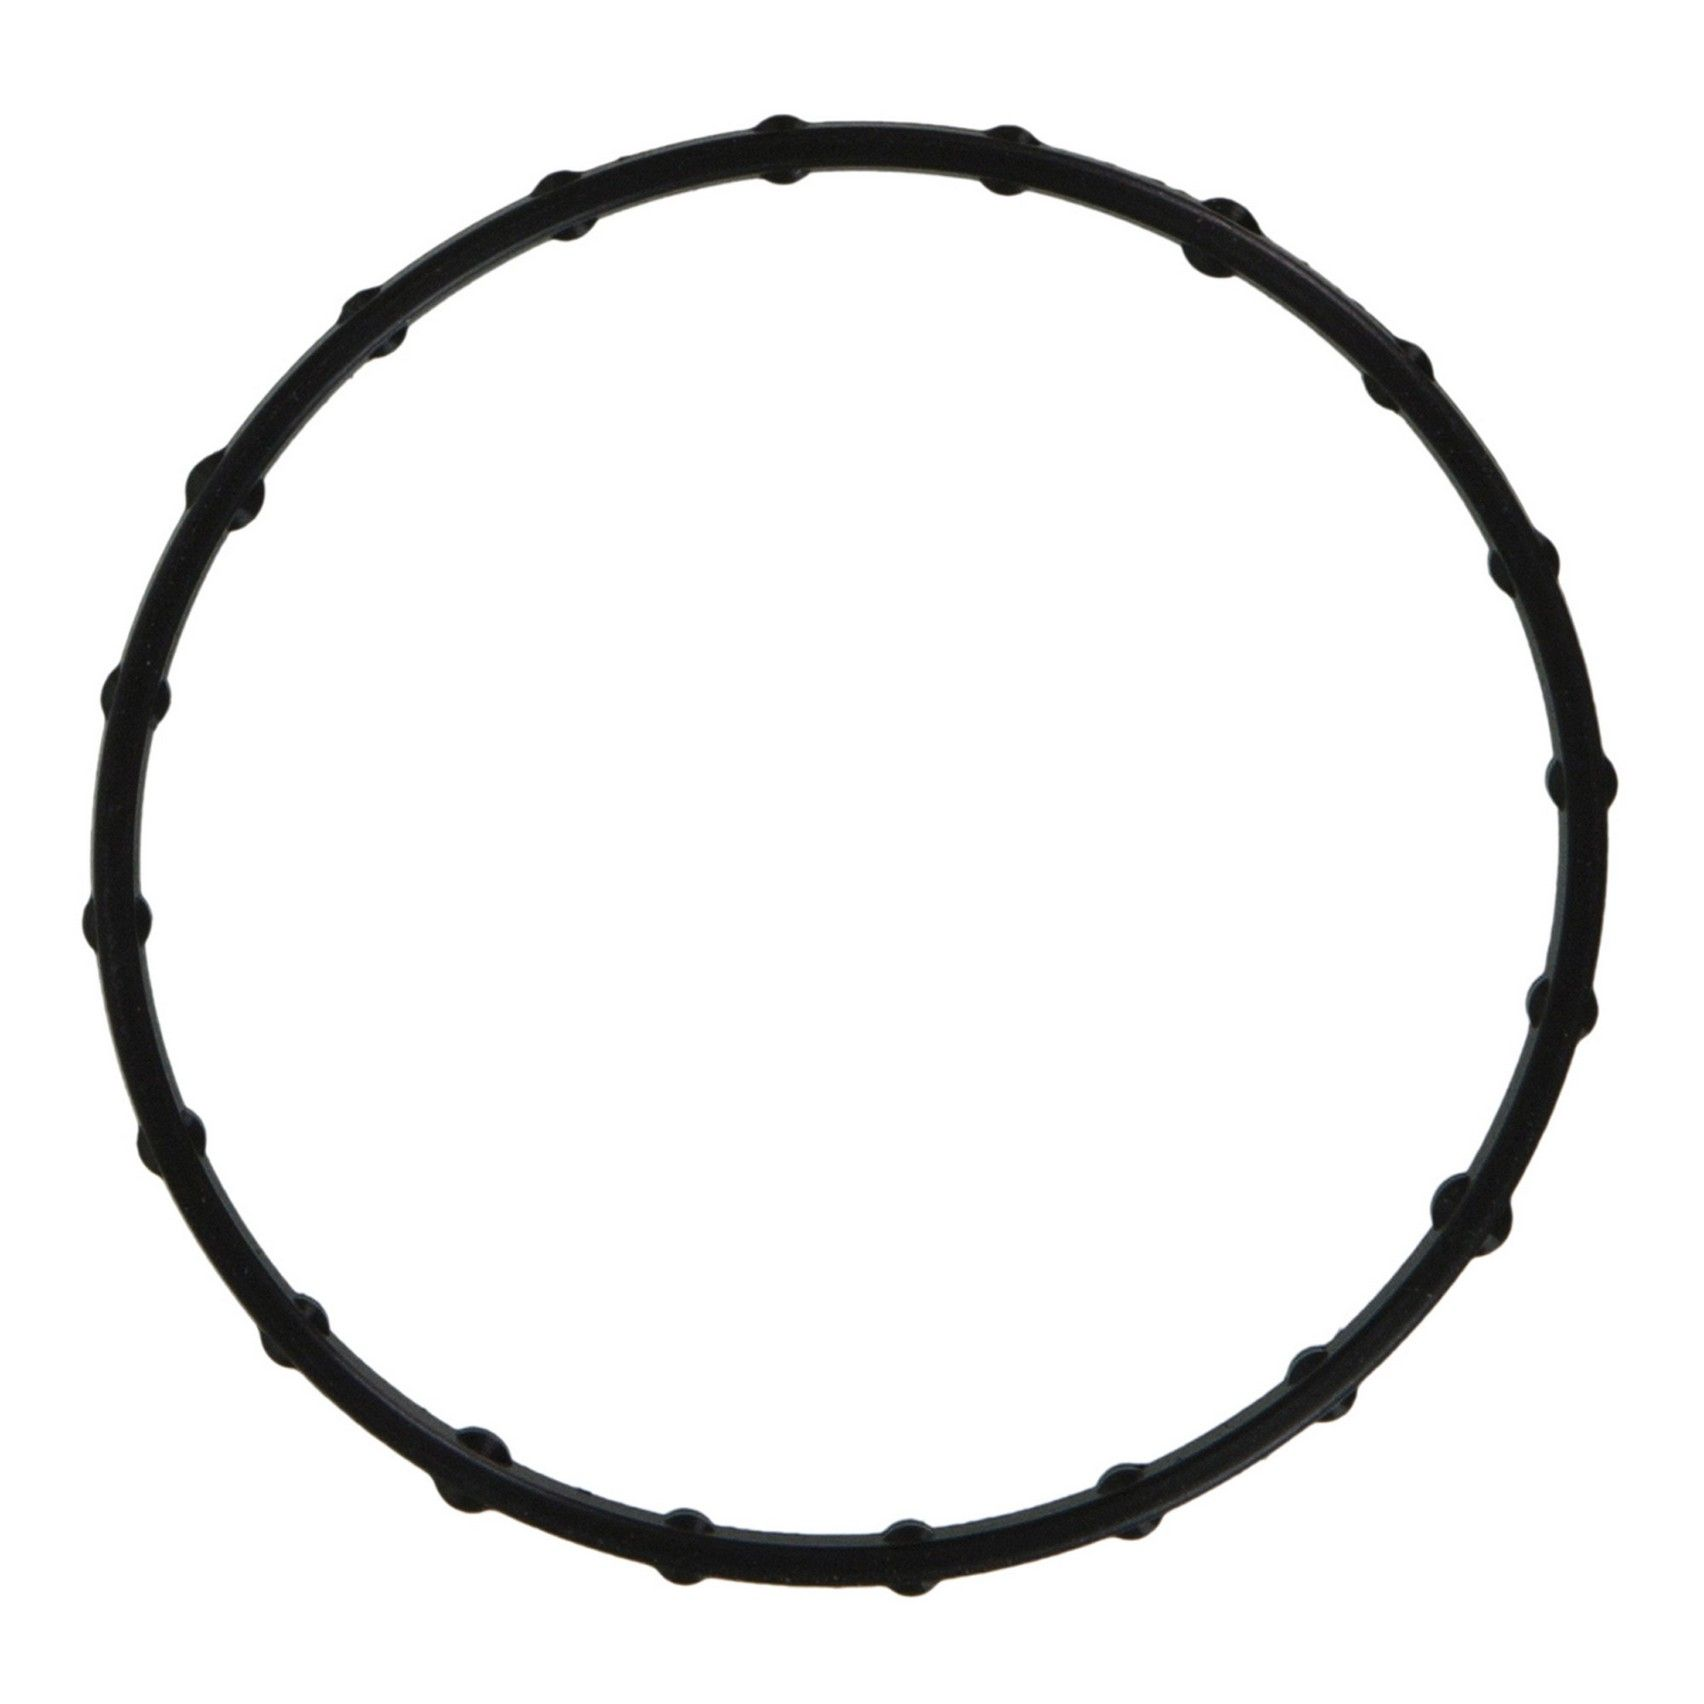 Engine Oil Filter Adapter Gasket Mahle B31703